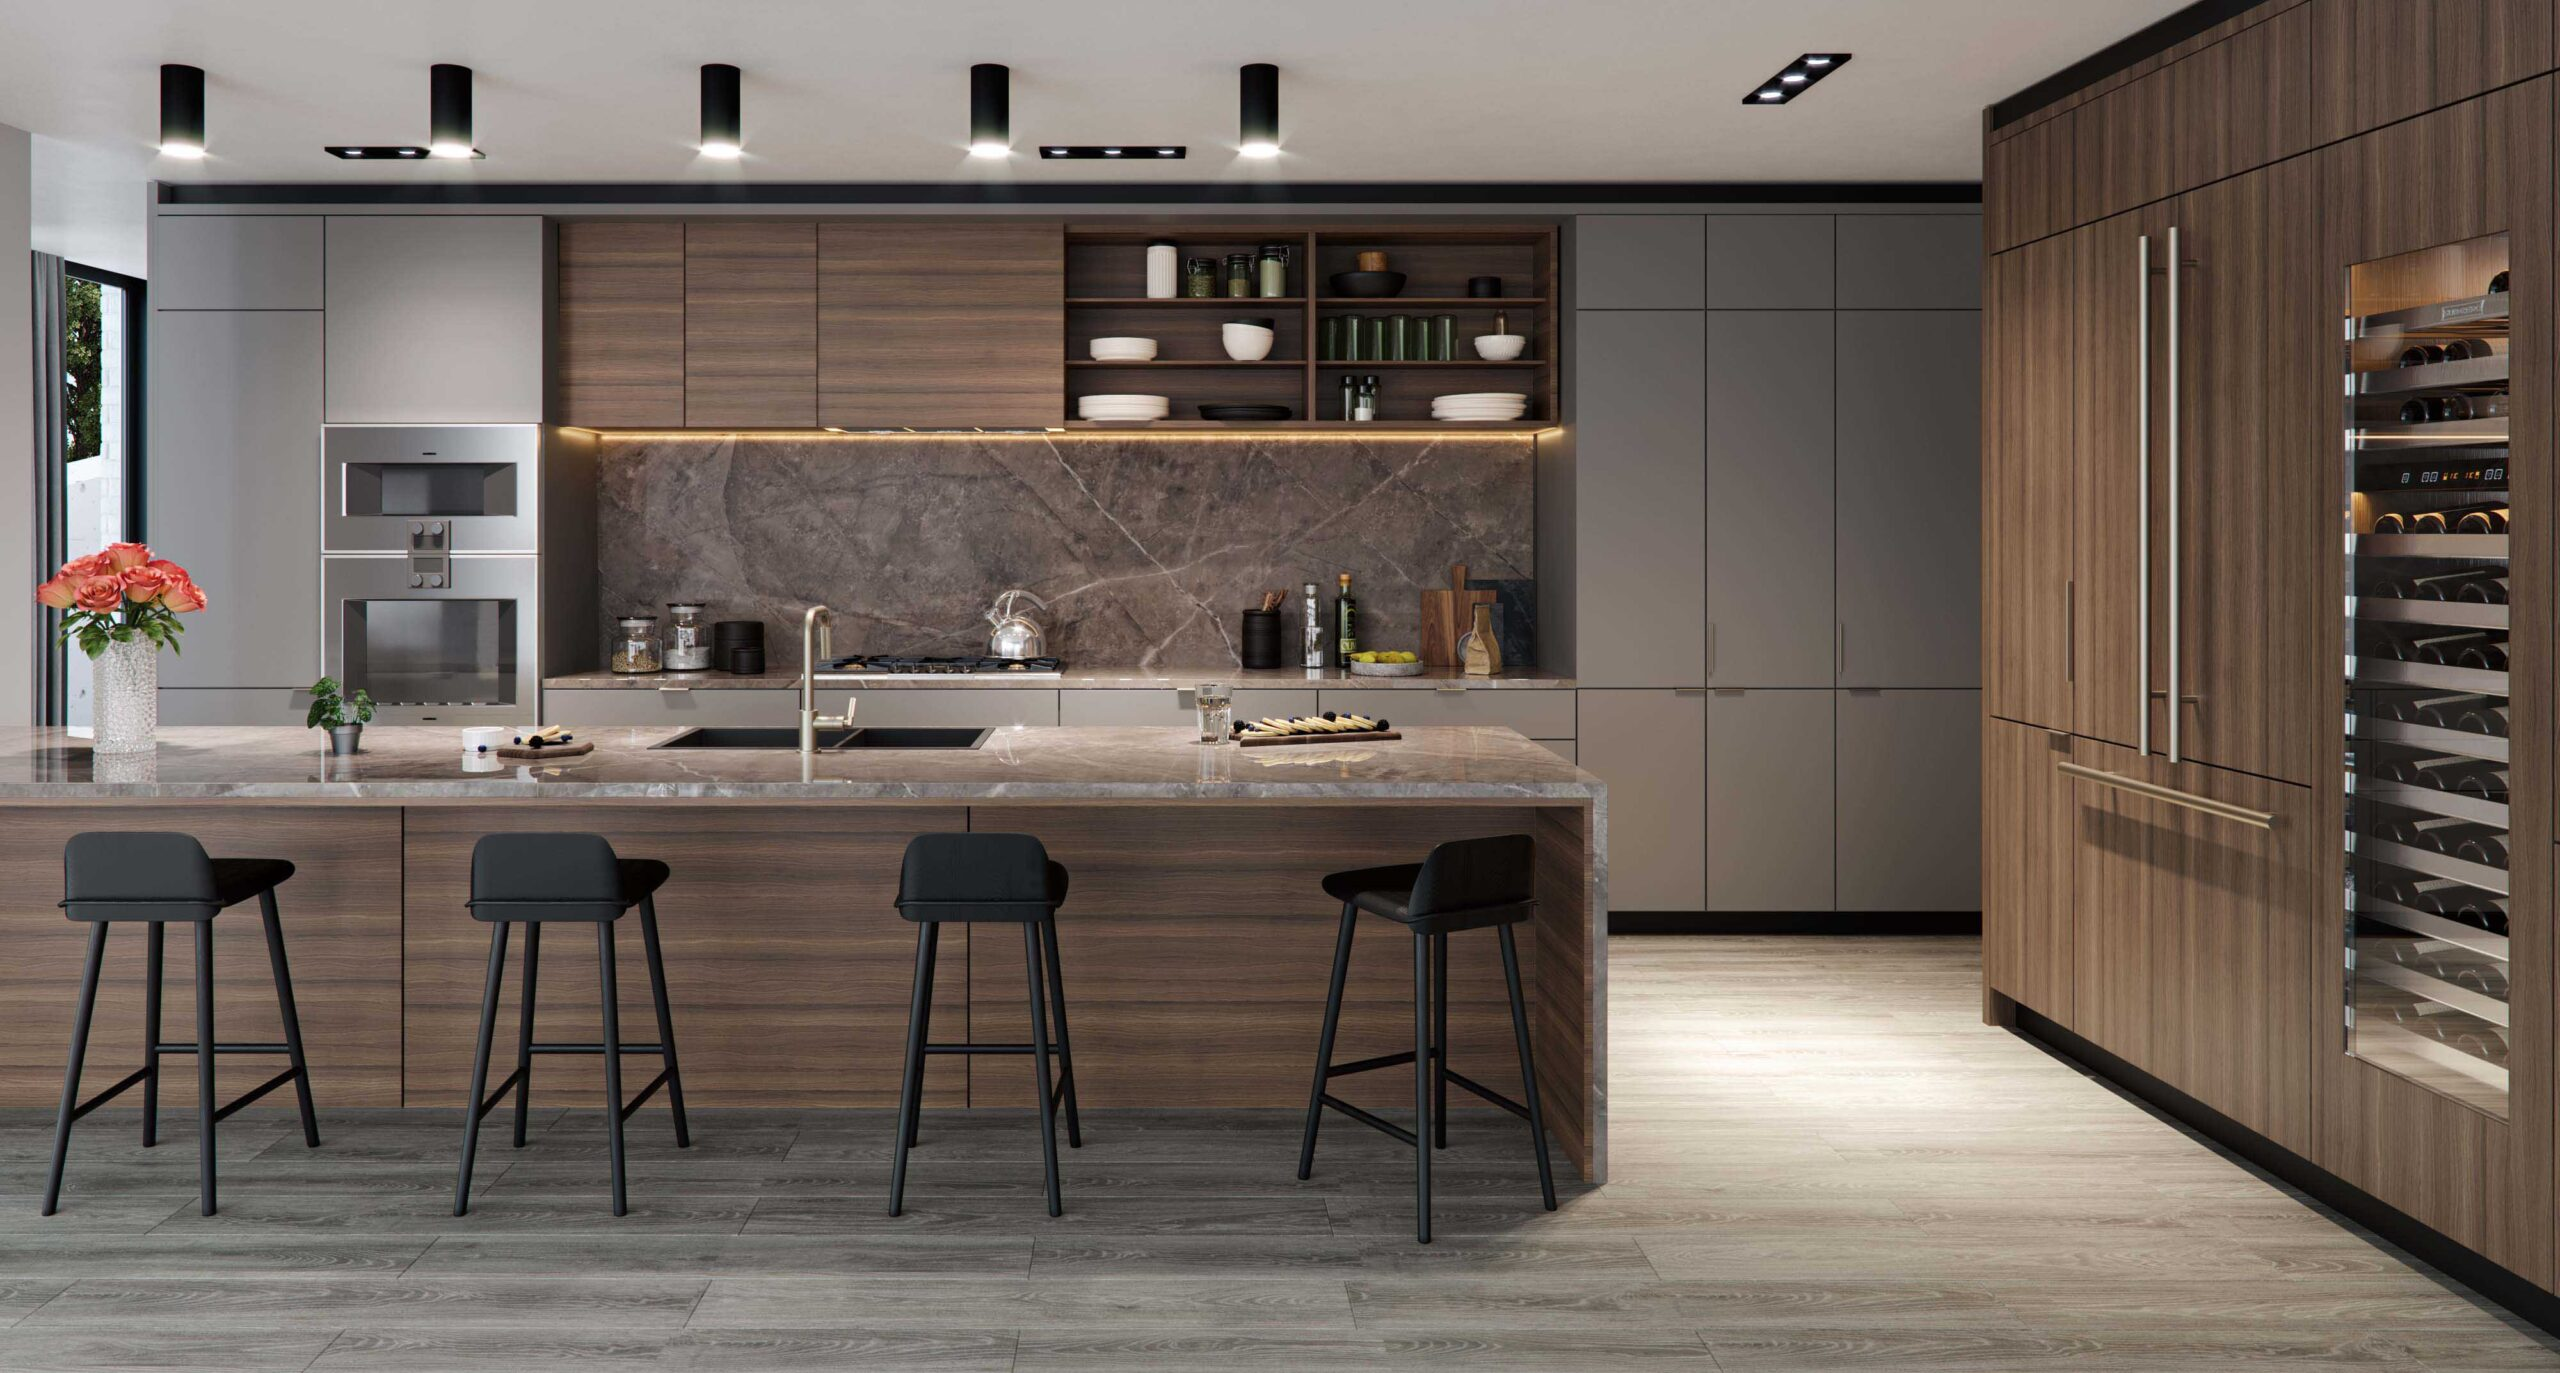 luxury kitchen rendering of a new development condominium created by radical galaxy studio